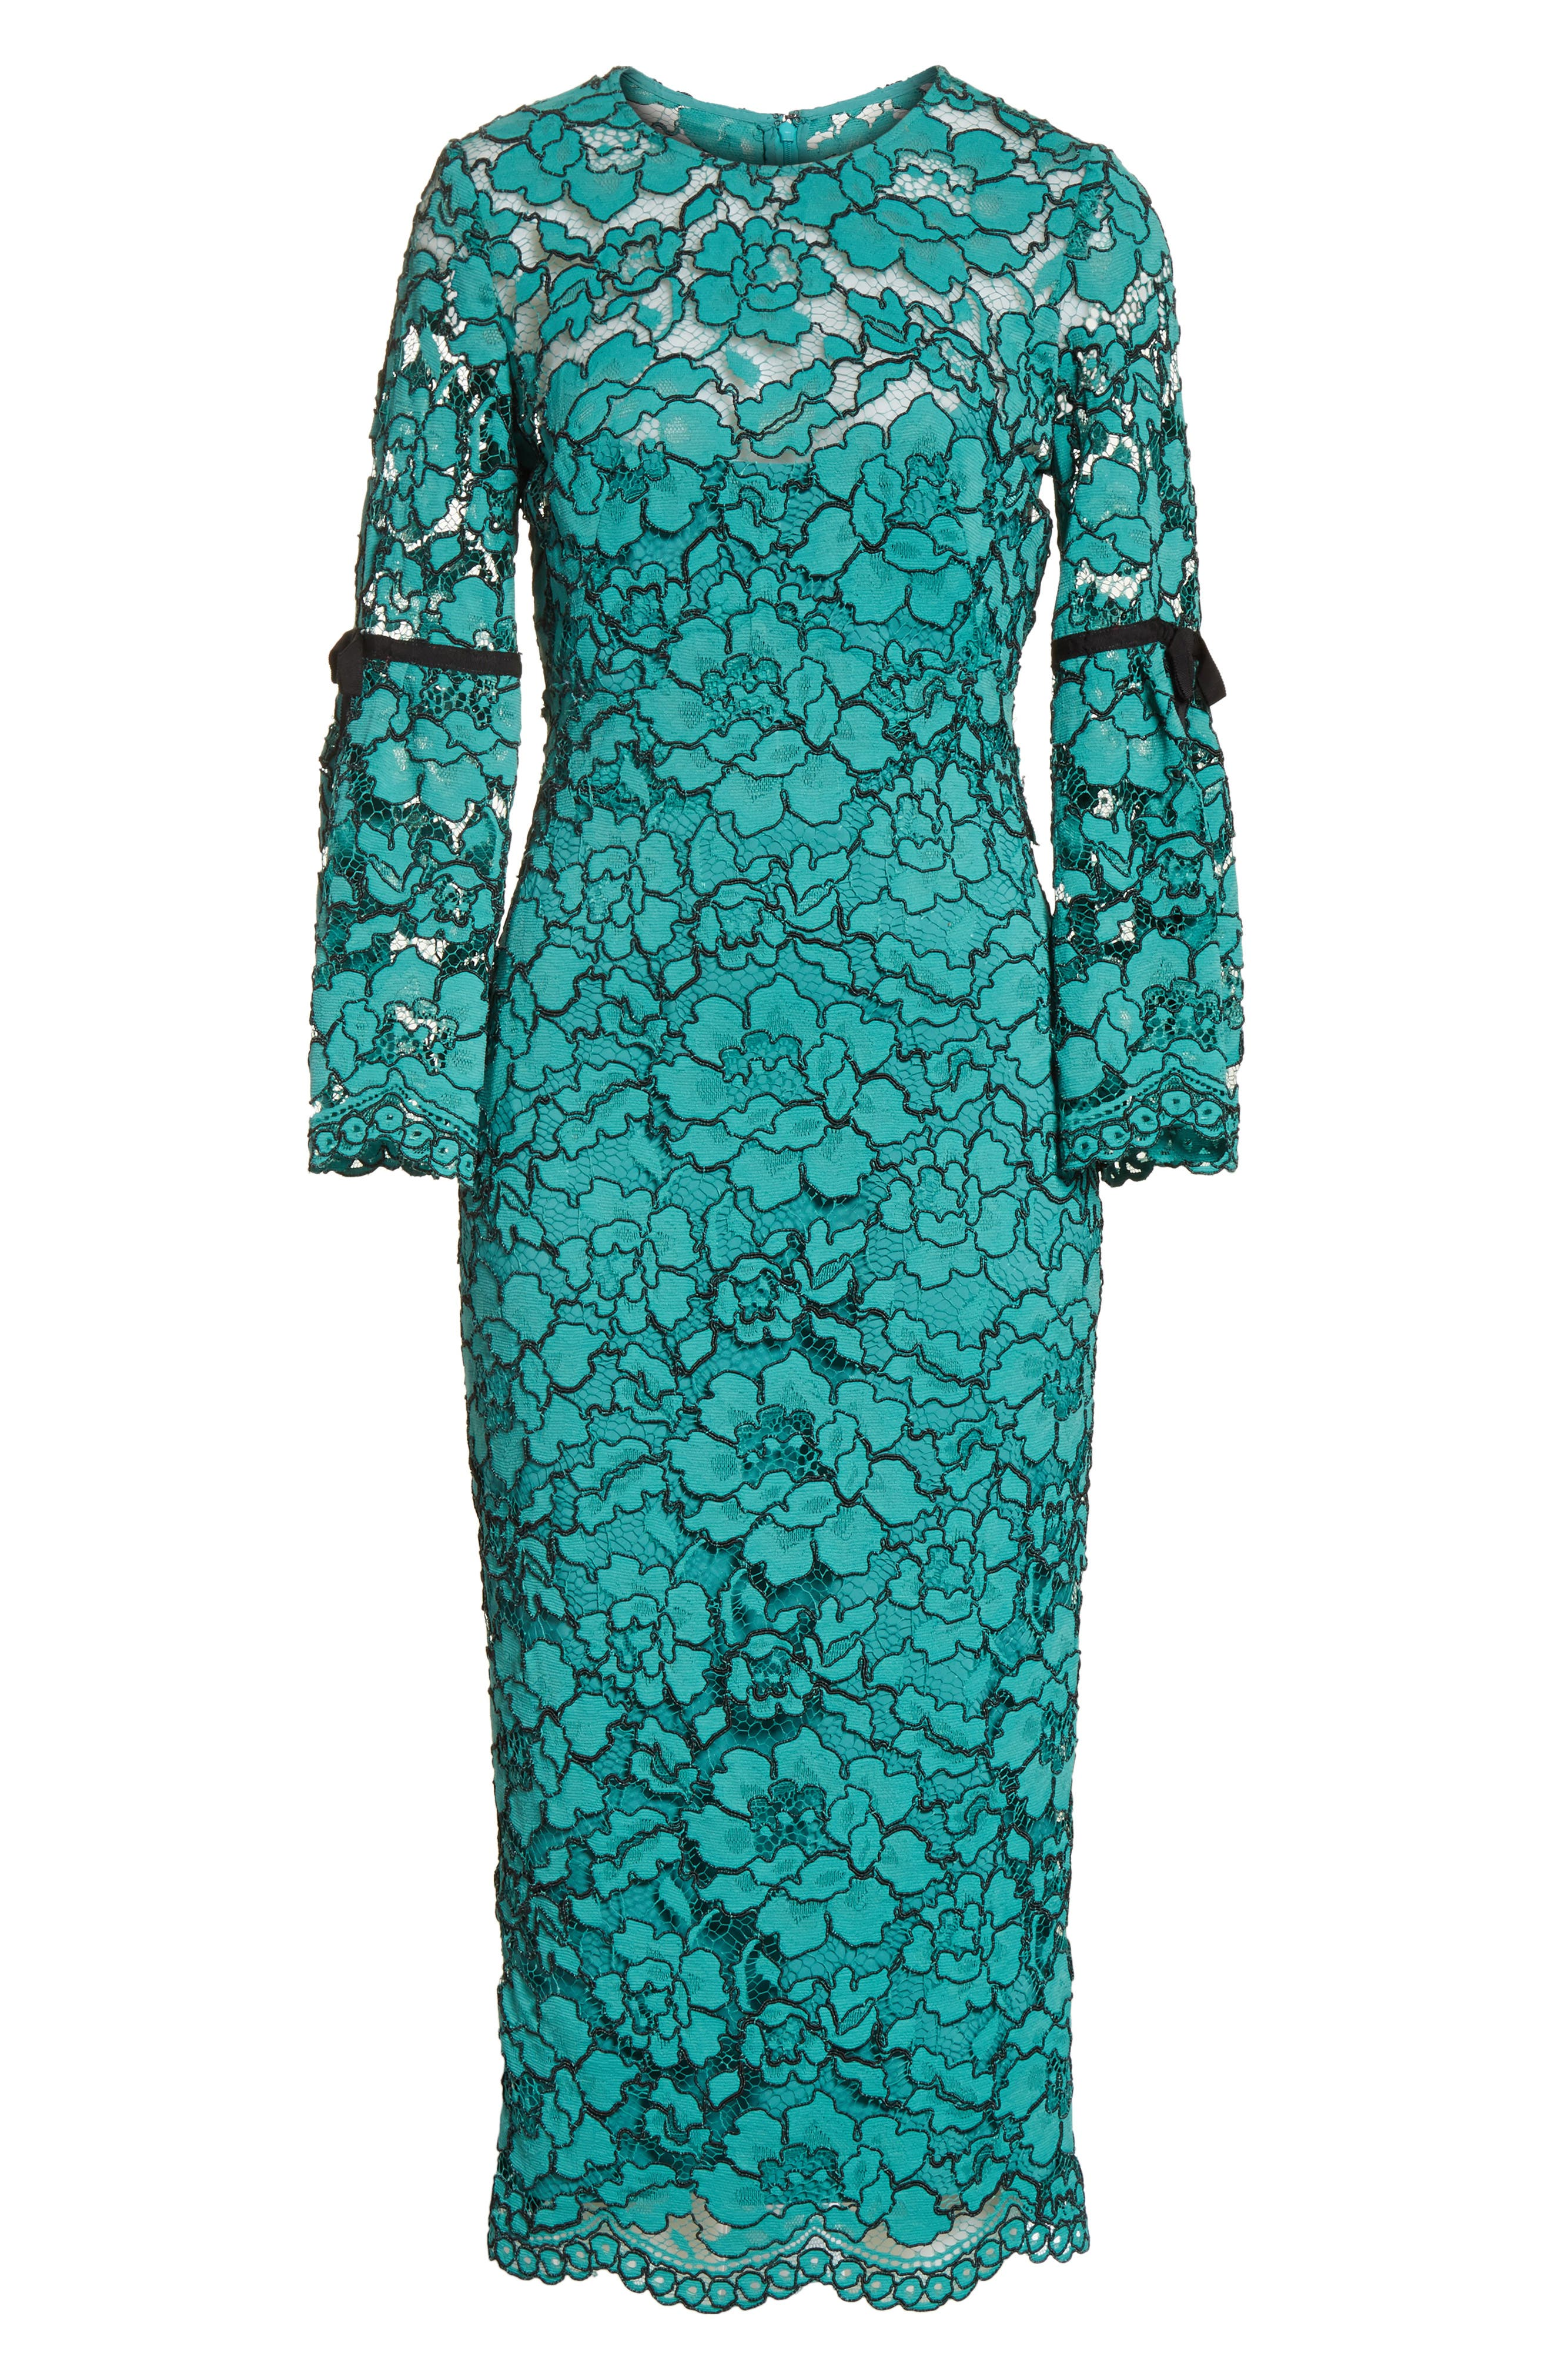 Lace Bell Sleeve Sheath Dress,                             Alternate thumbnail 6, color,